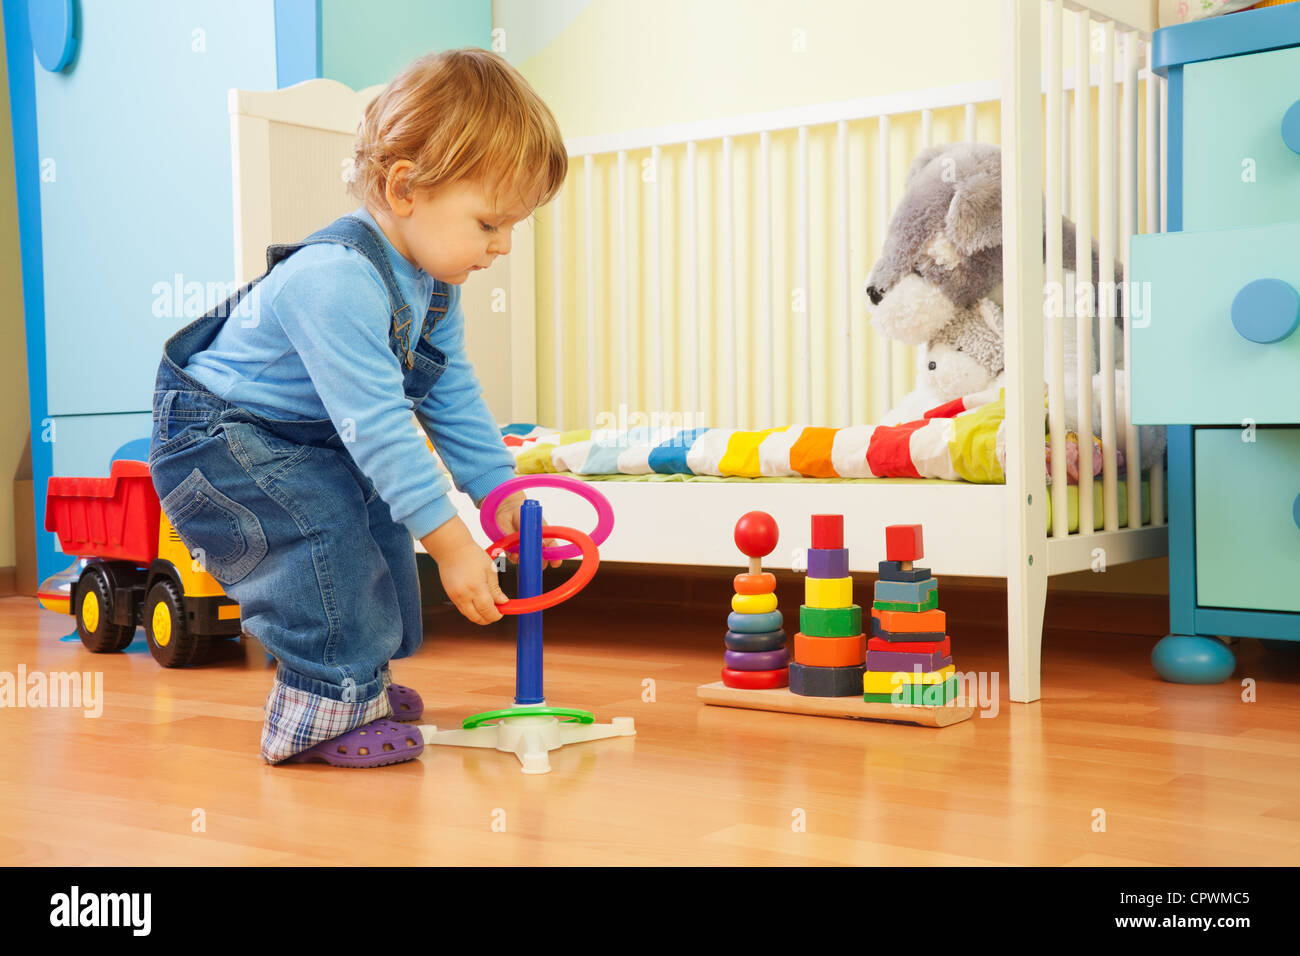 Boy playing with stacking rings in nursery room - Stock Image